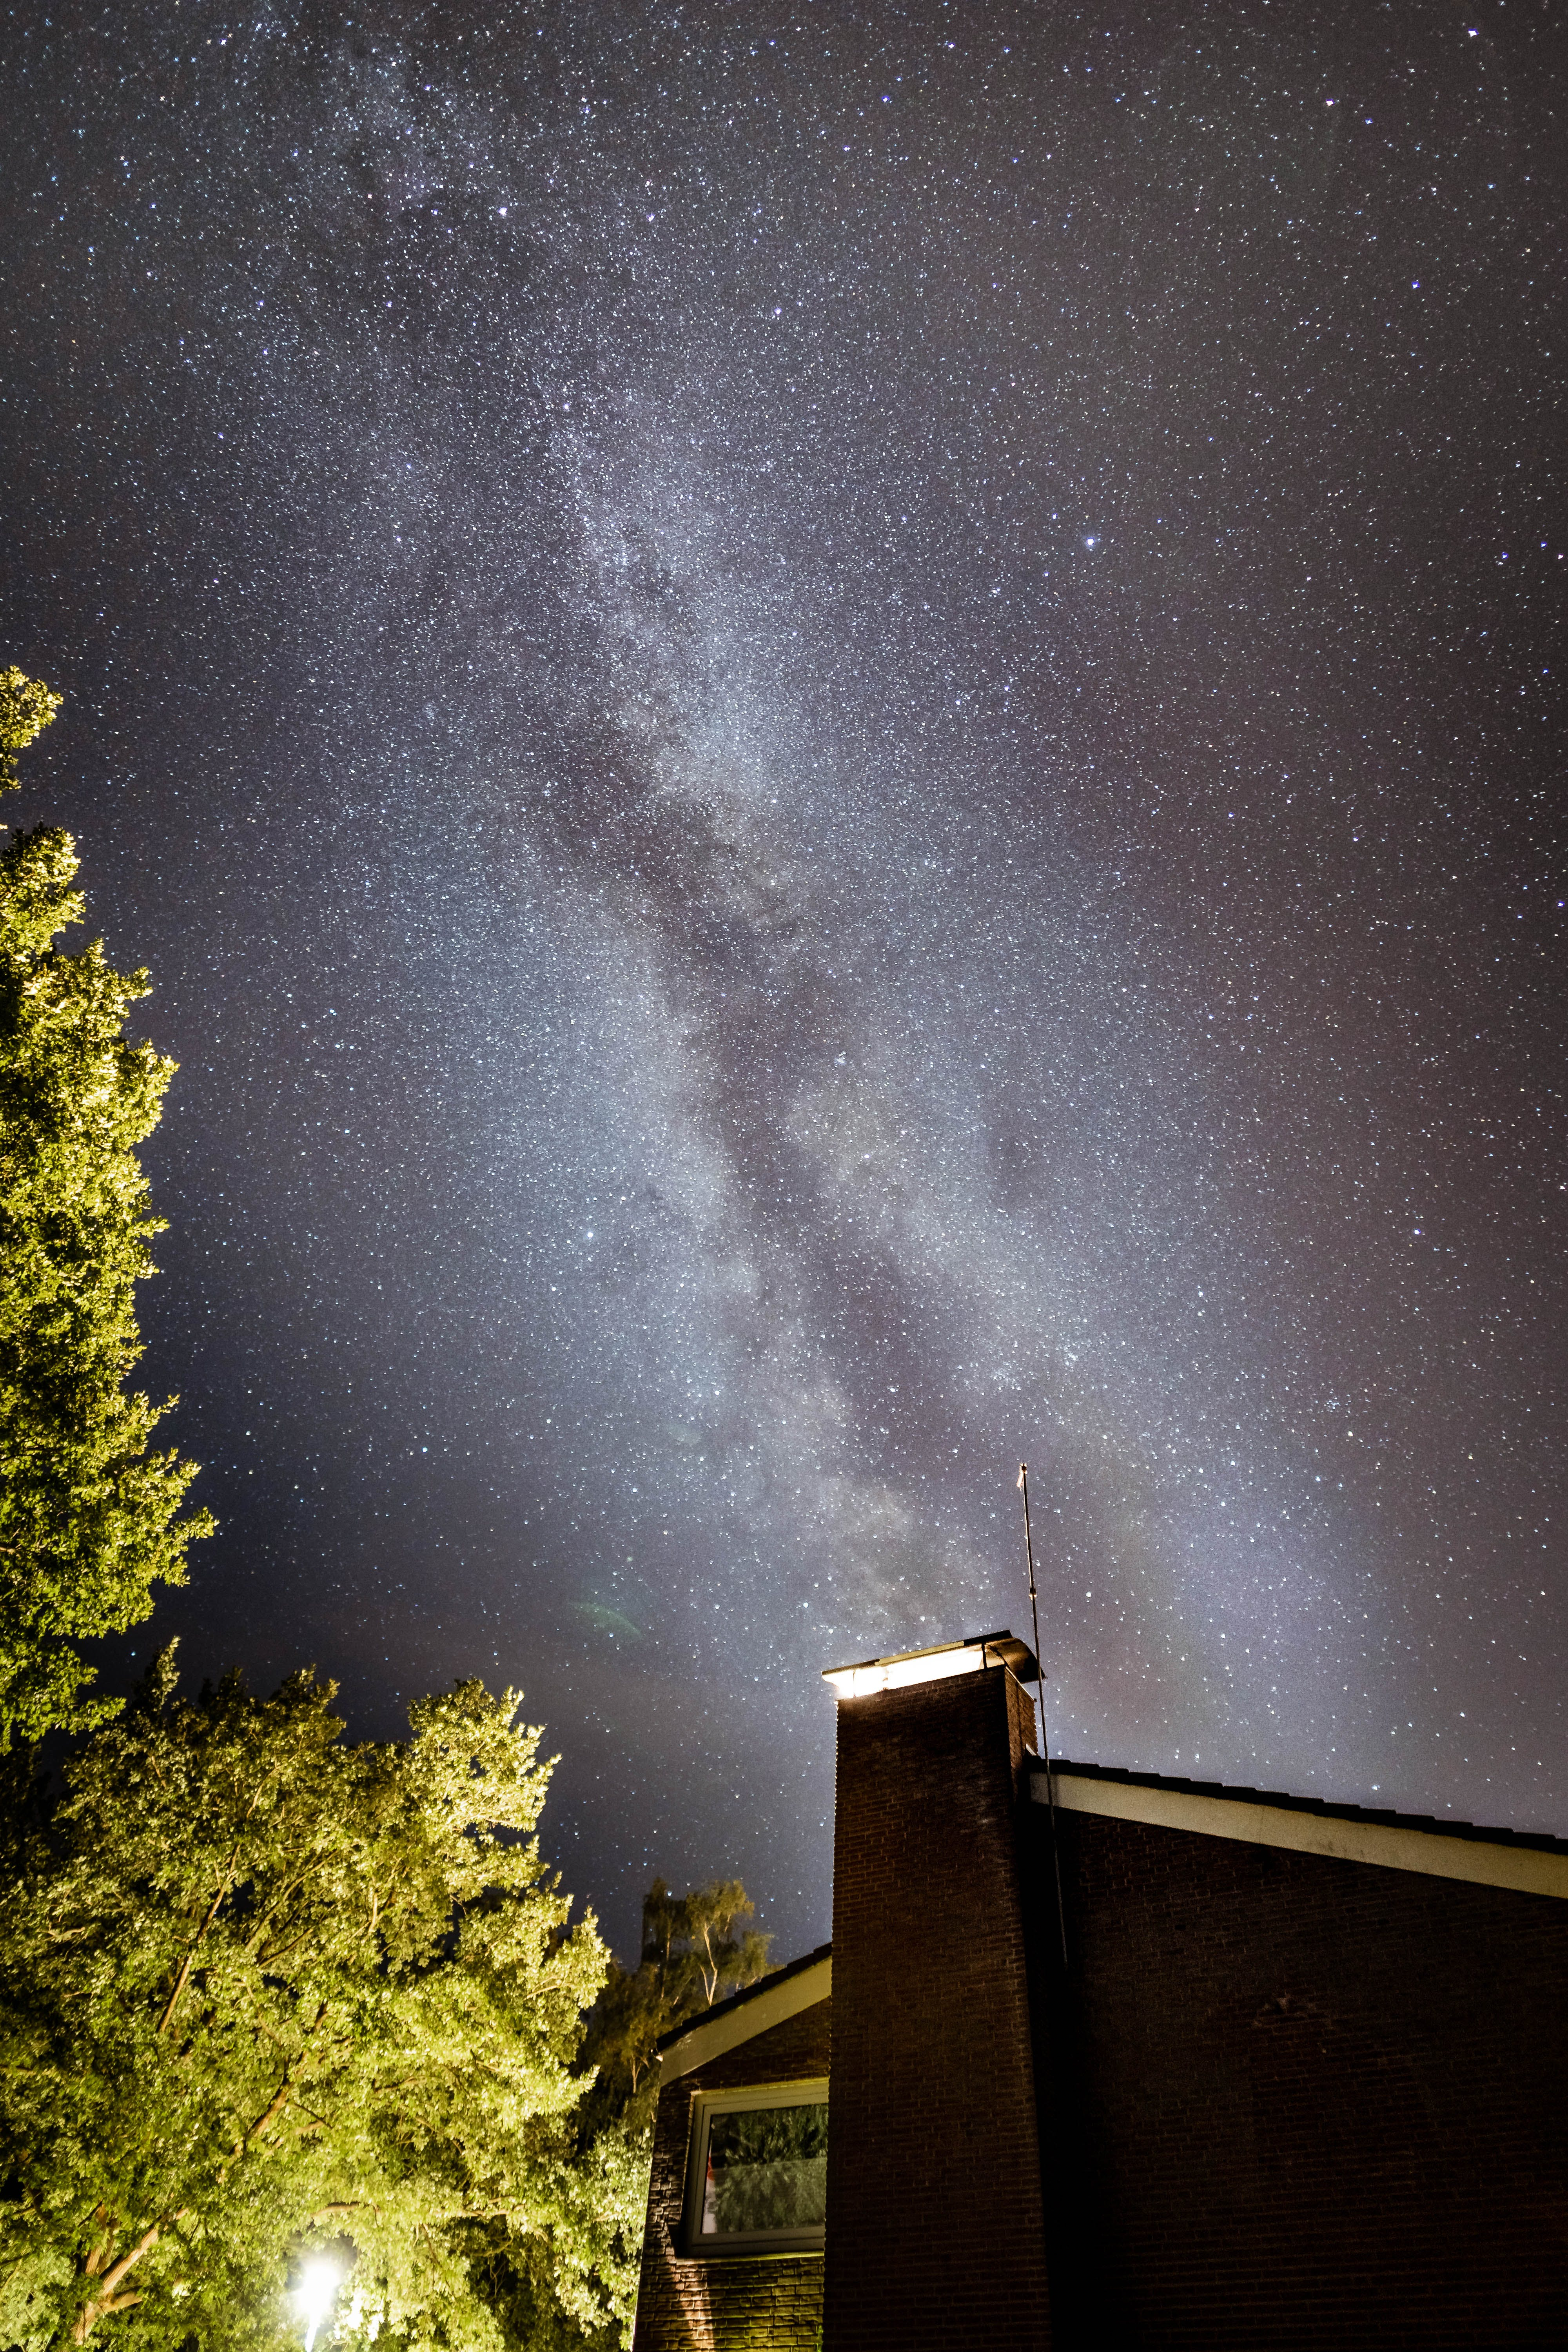 Landscape Photography of Milky Way Galaxy